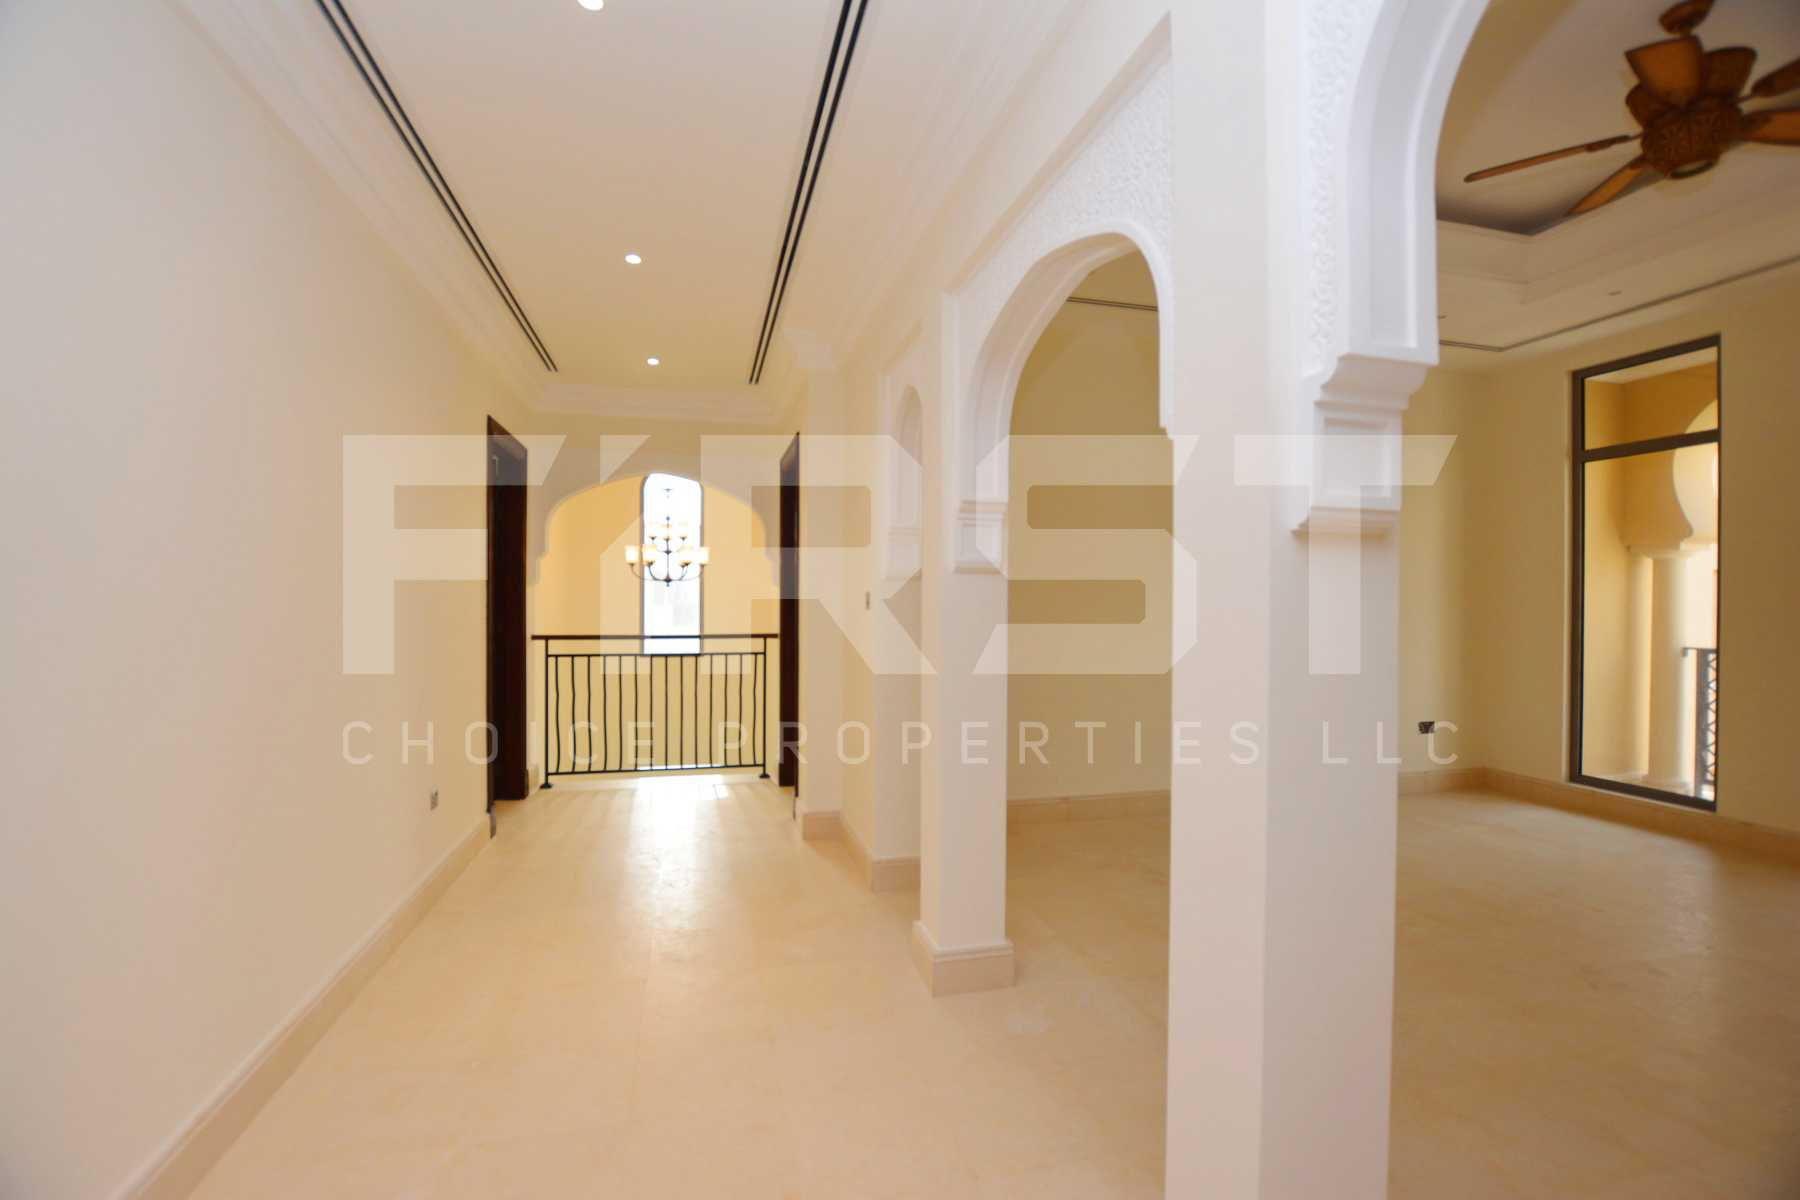 Internal Photo of Delux 5 Bedroom Villa in Saadiyat Beach Villas Saadiyat Island Abu Dhabi UAE (46).jpg